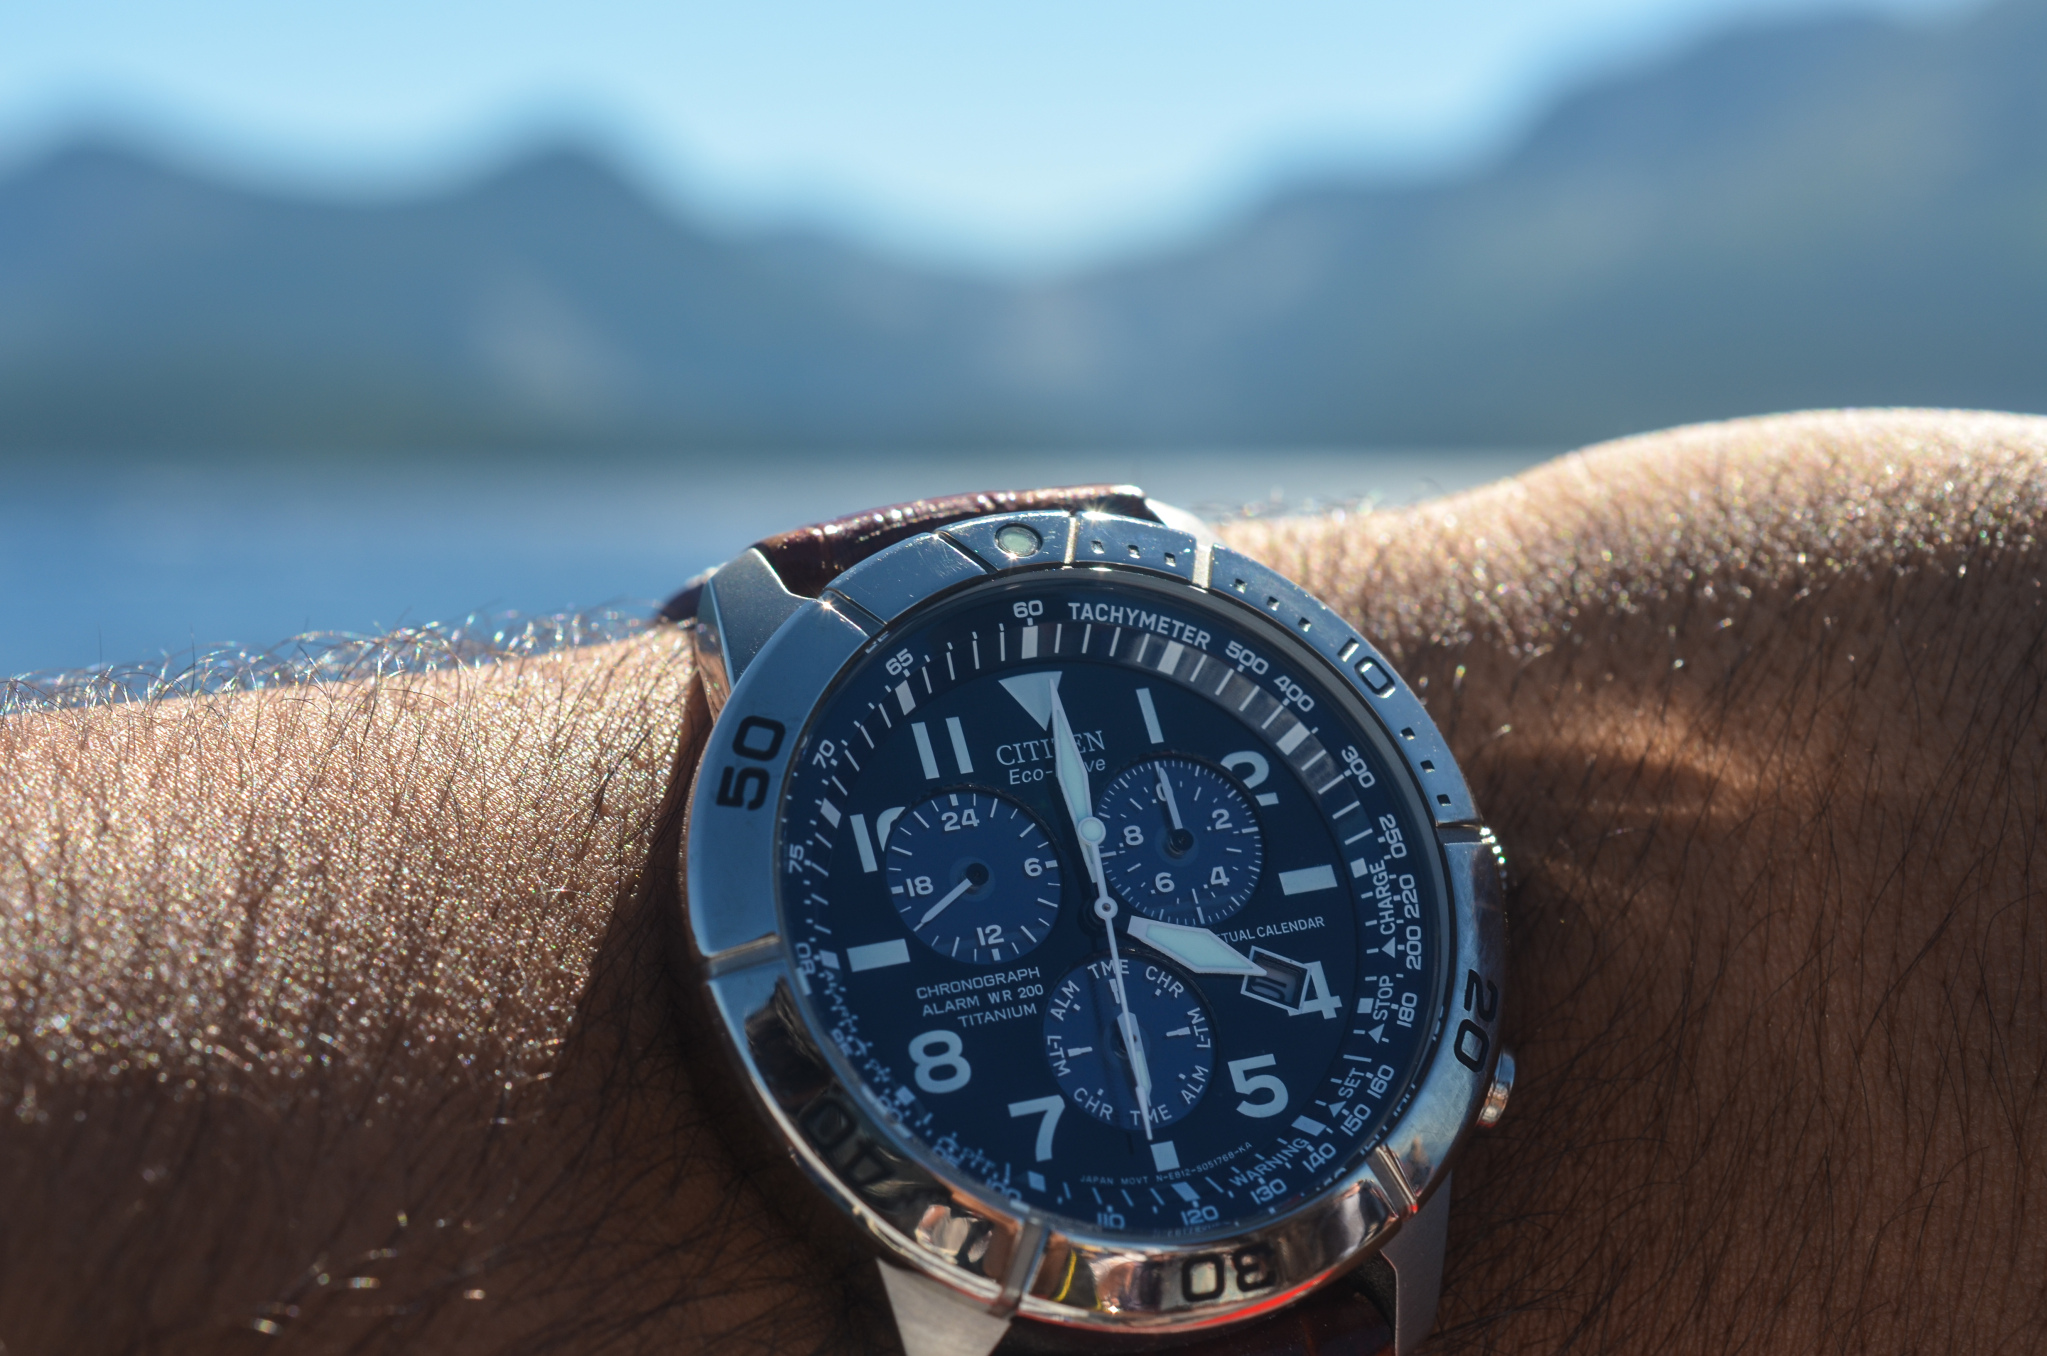 How much does a citizen eco drive watch cost?